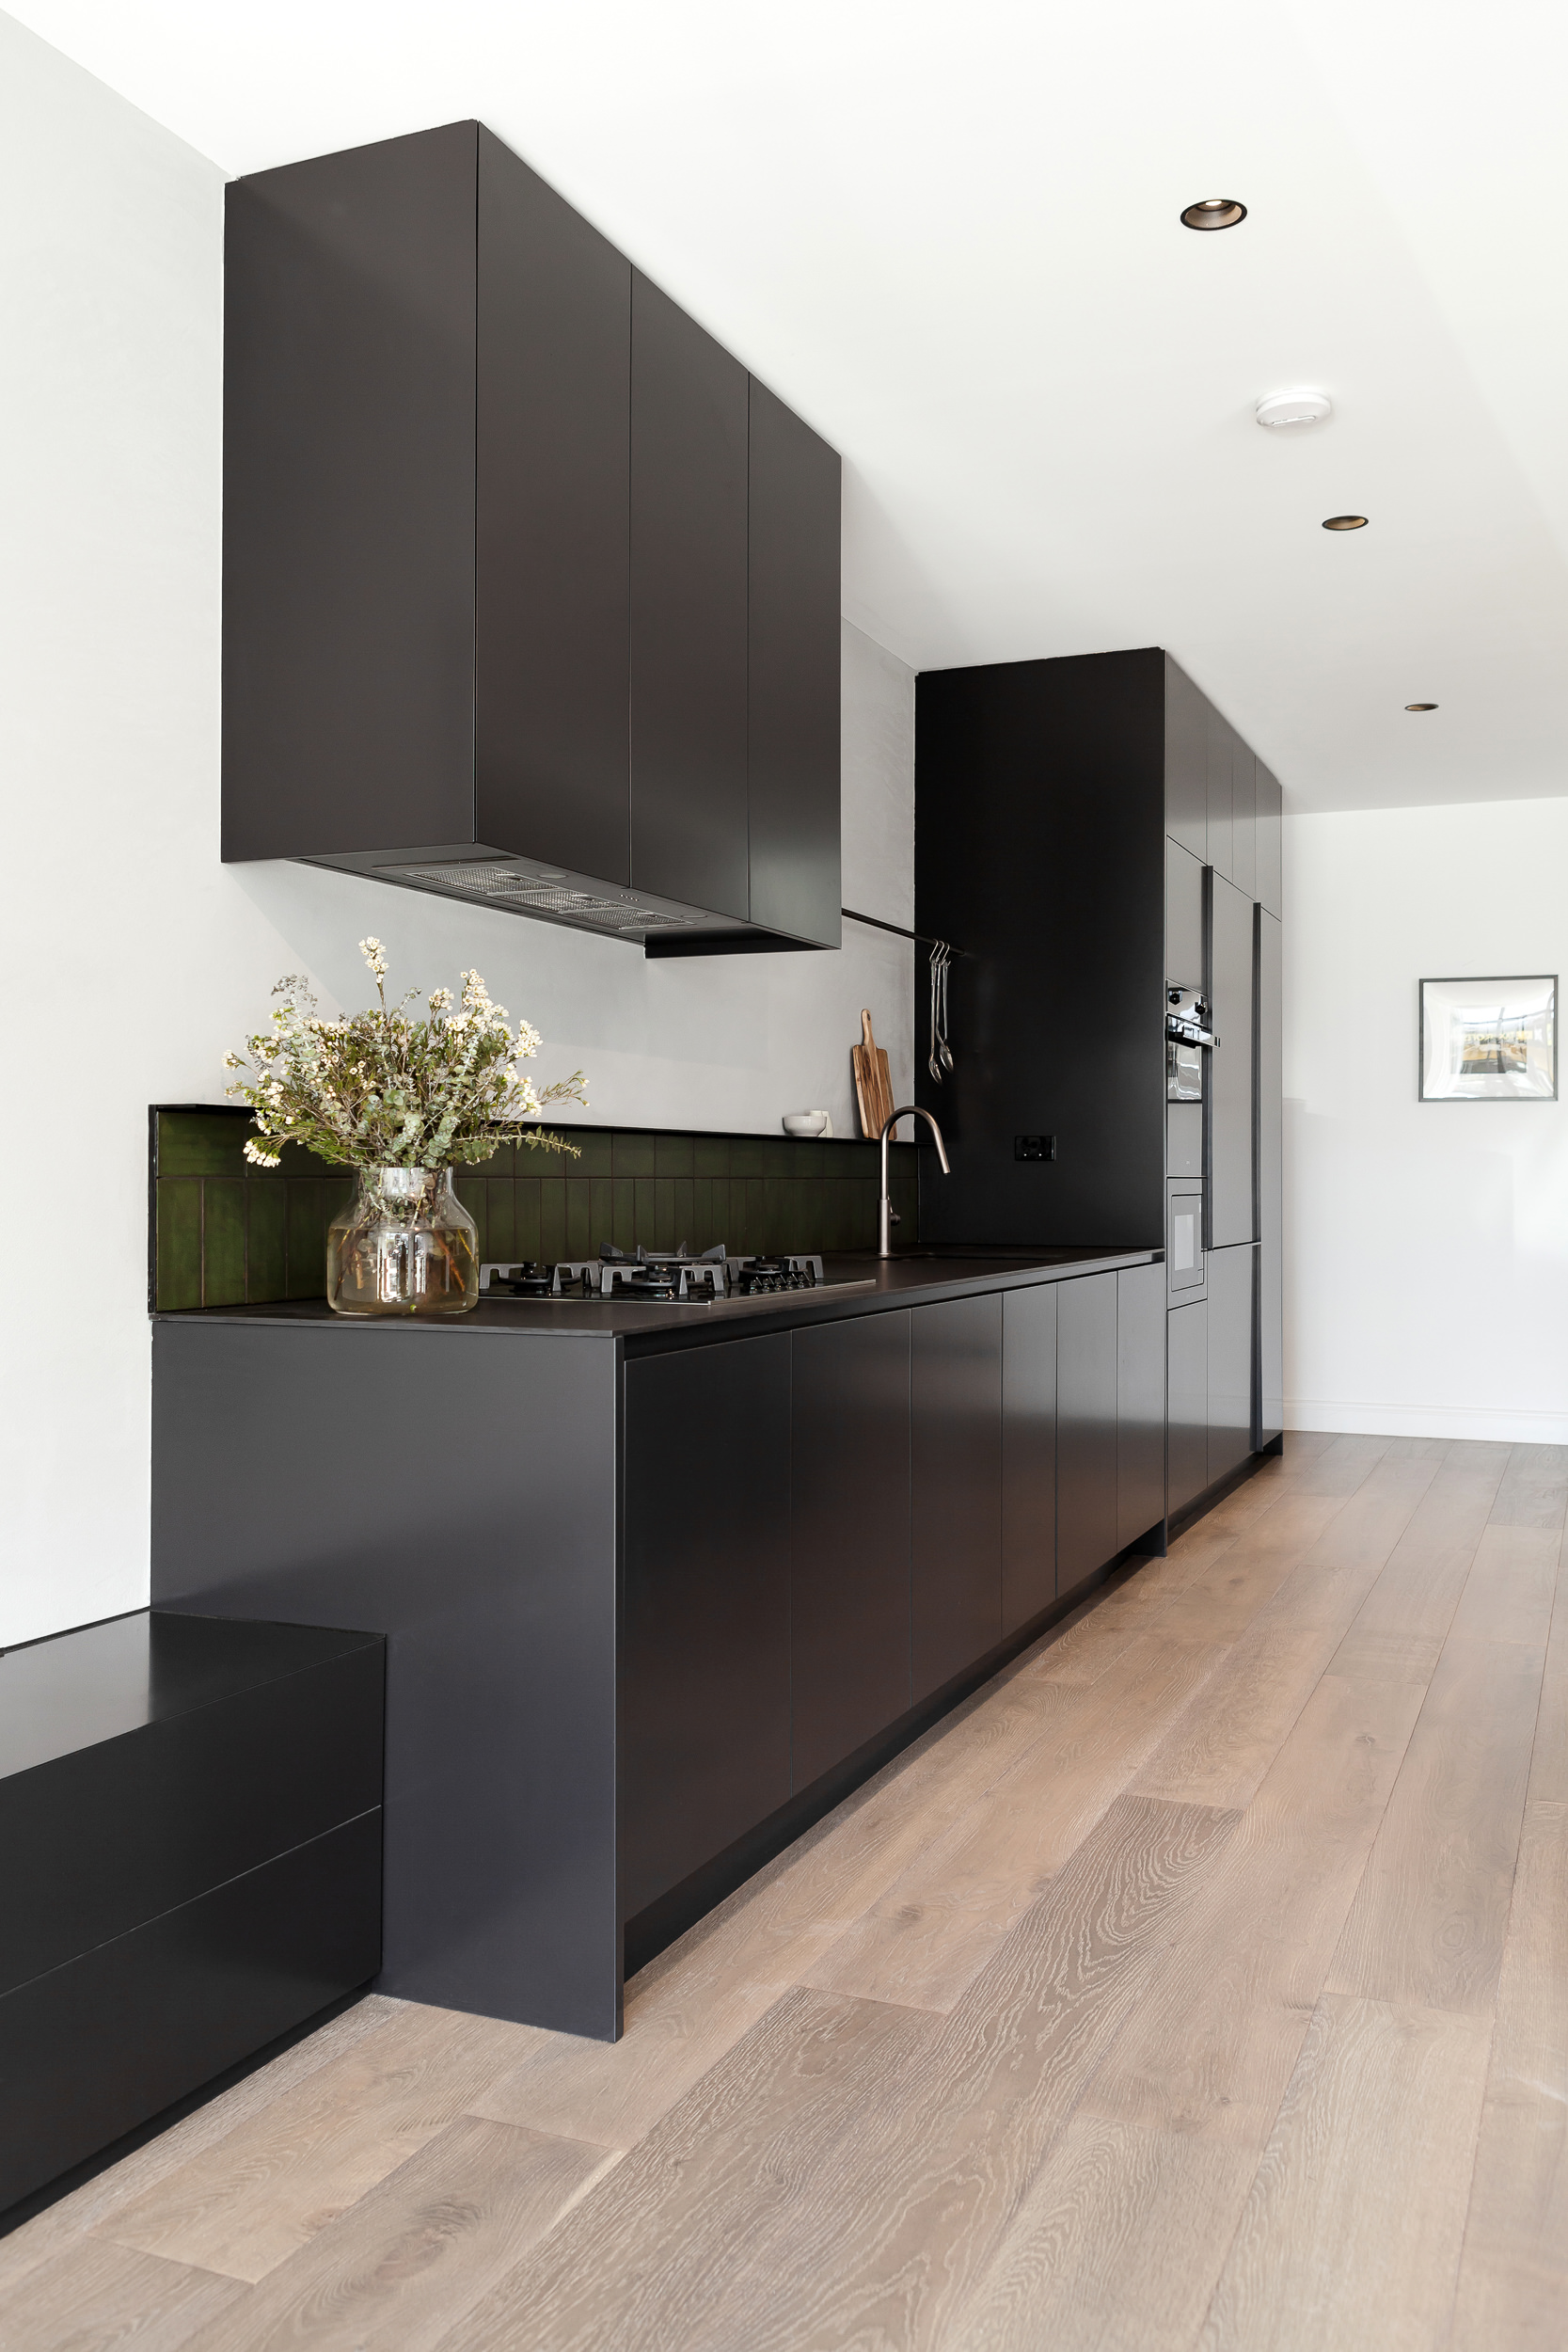 Brompton residential construction kitchen